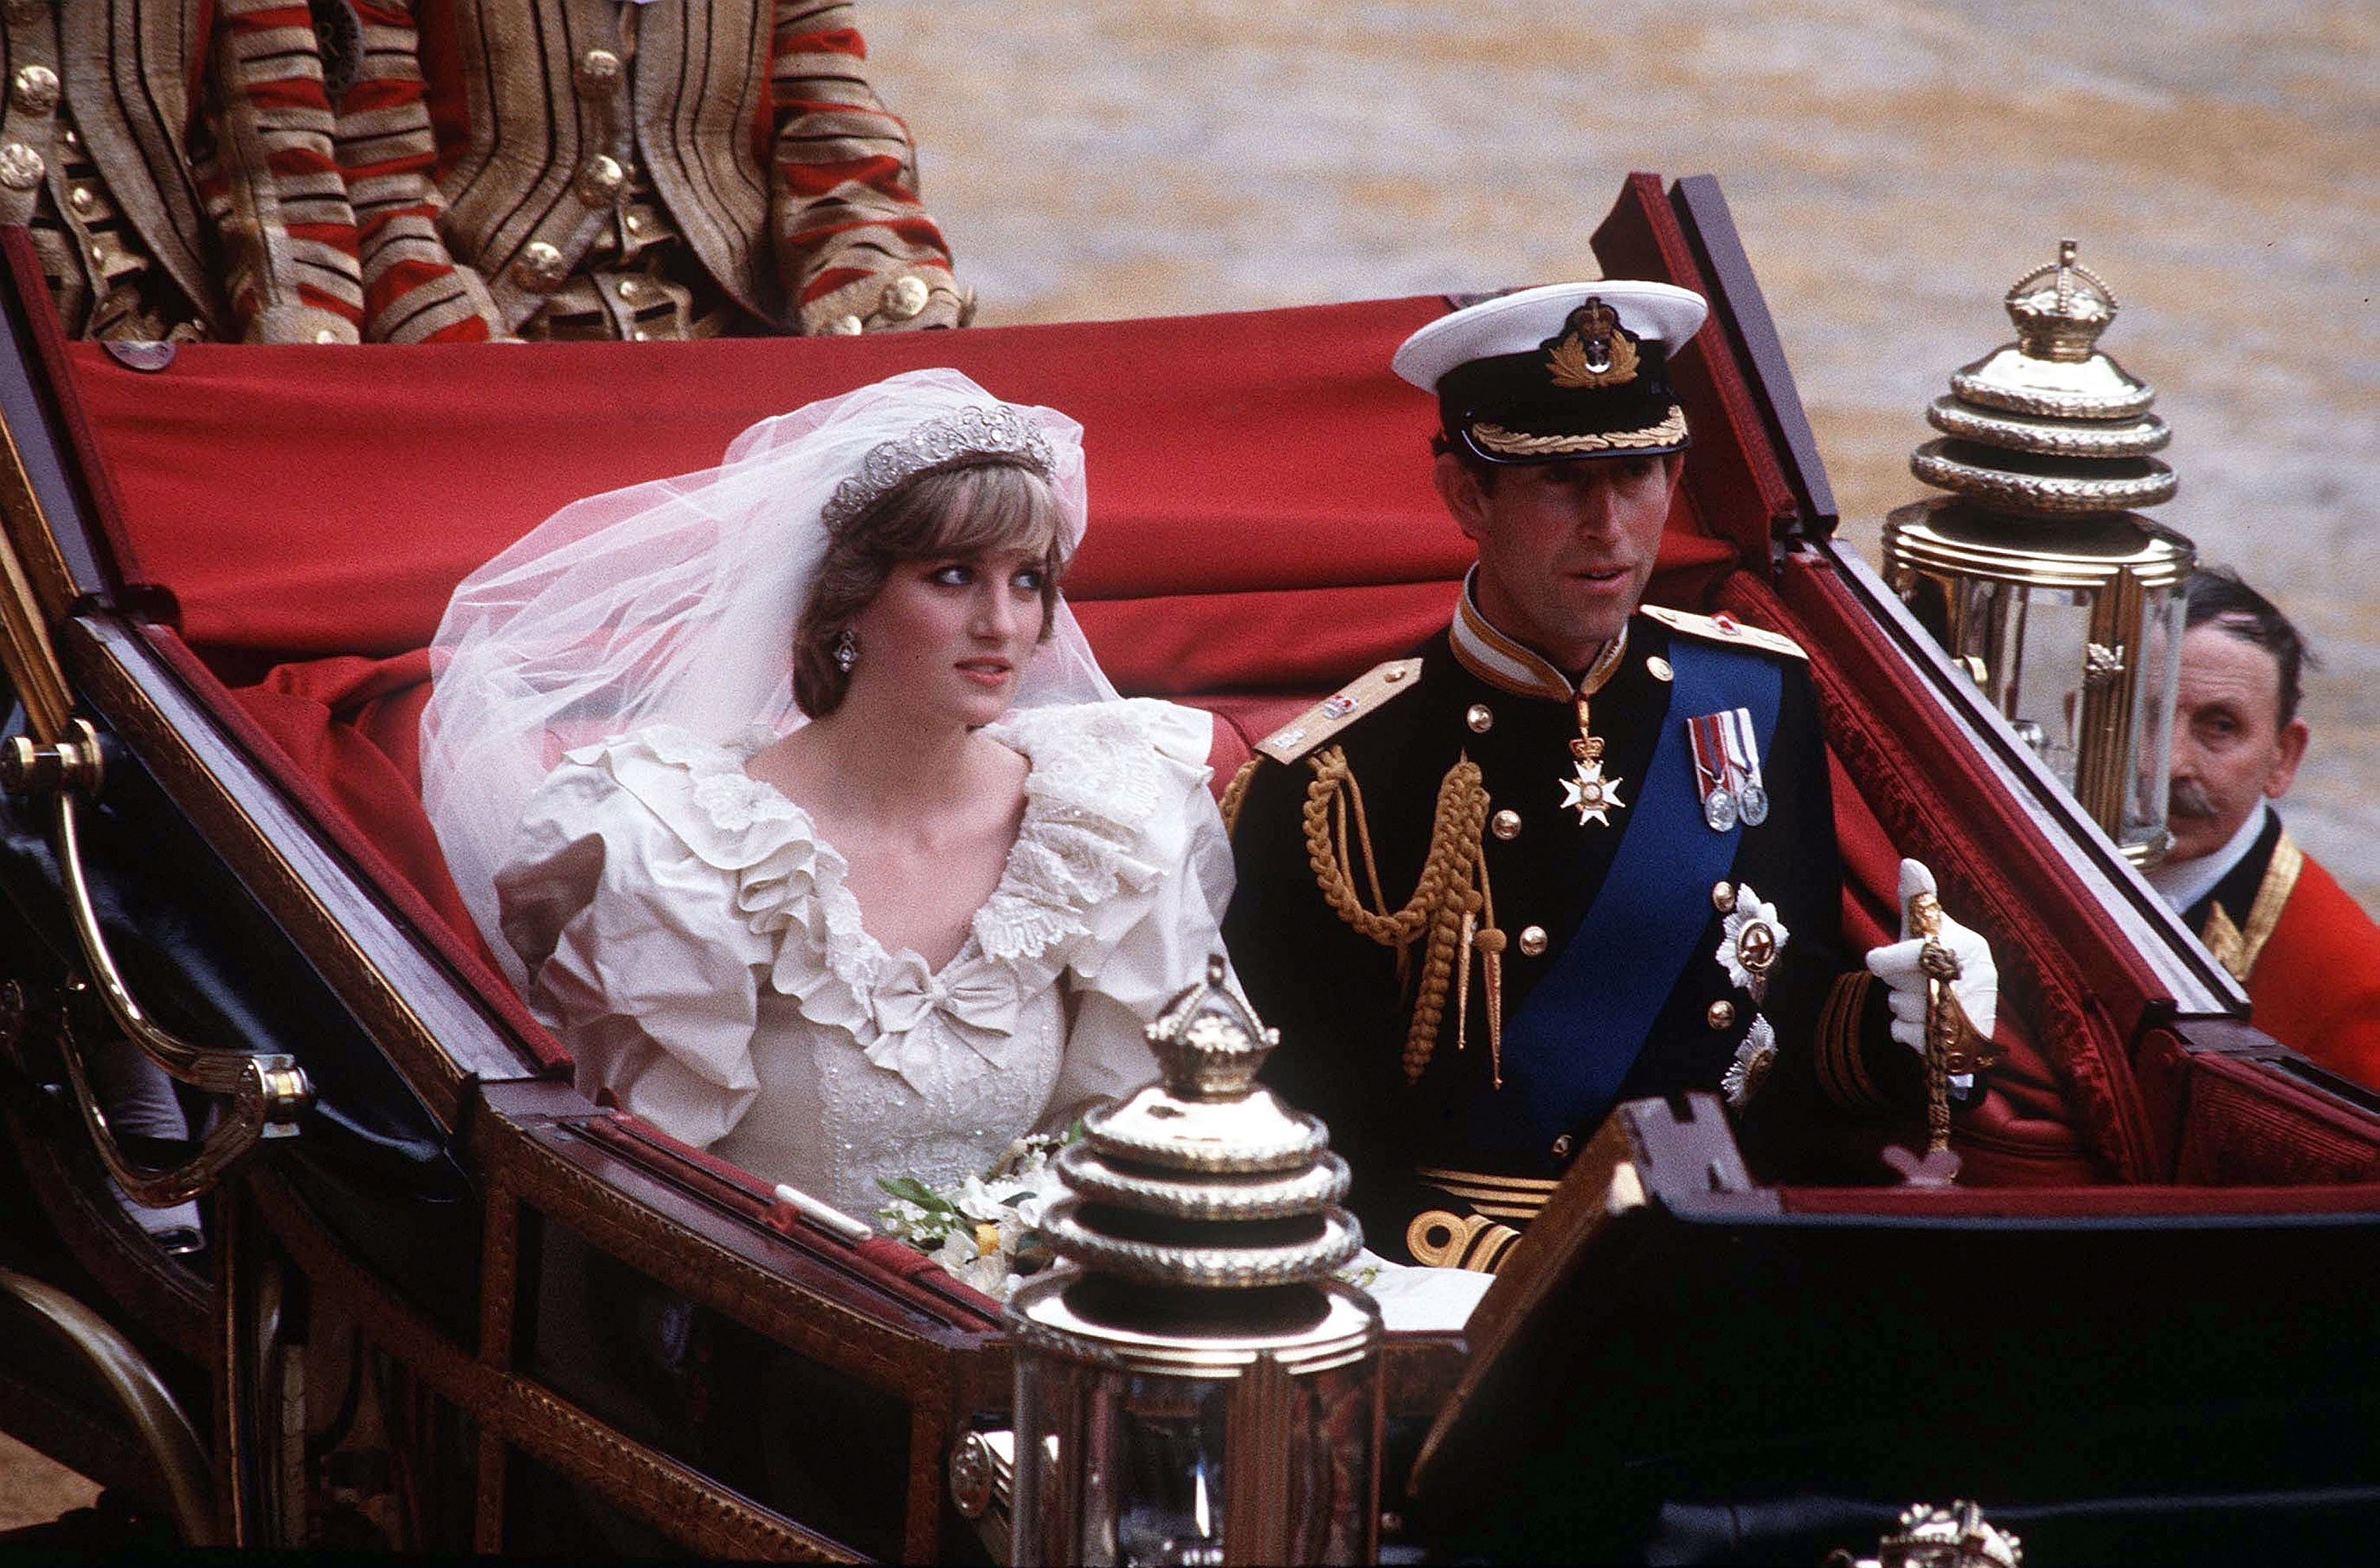 Diana, Princess of Wales and Prince Charles ride in a carriage after their wedding at St. Paul's Cathedral July 29, 1981, in London. | Source: Getty Images.